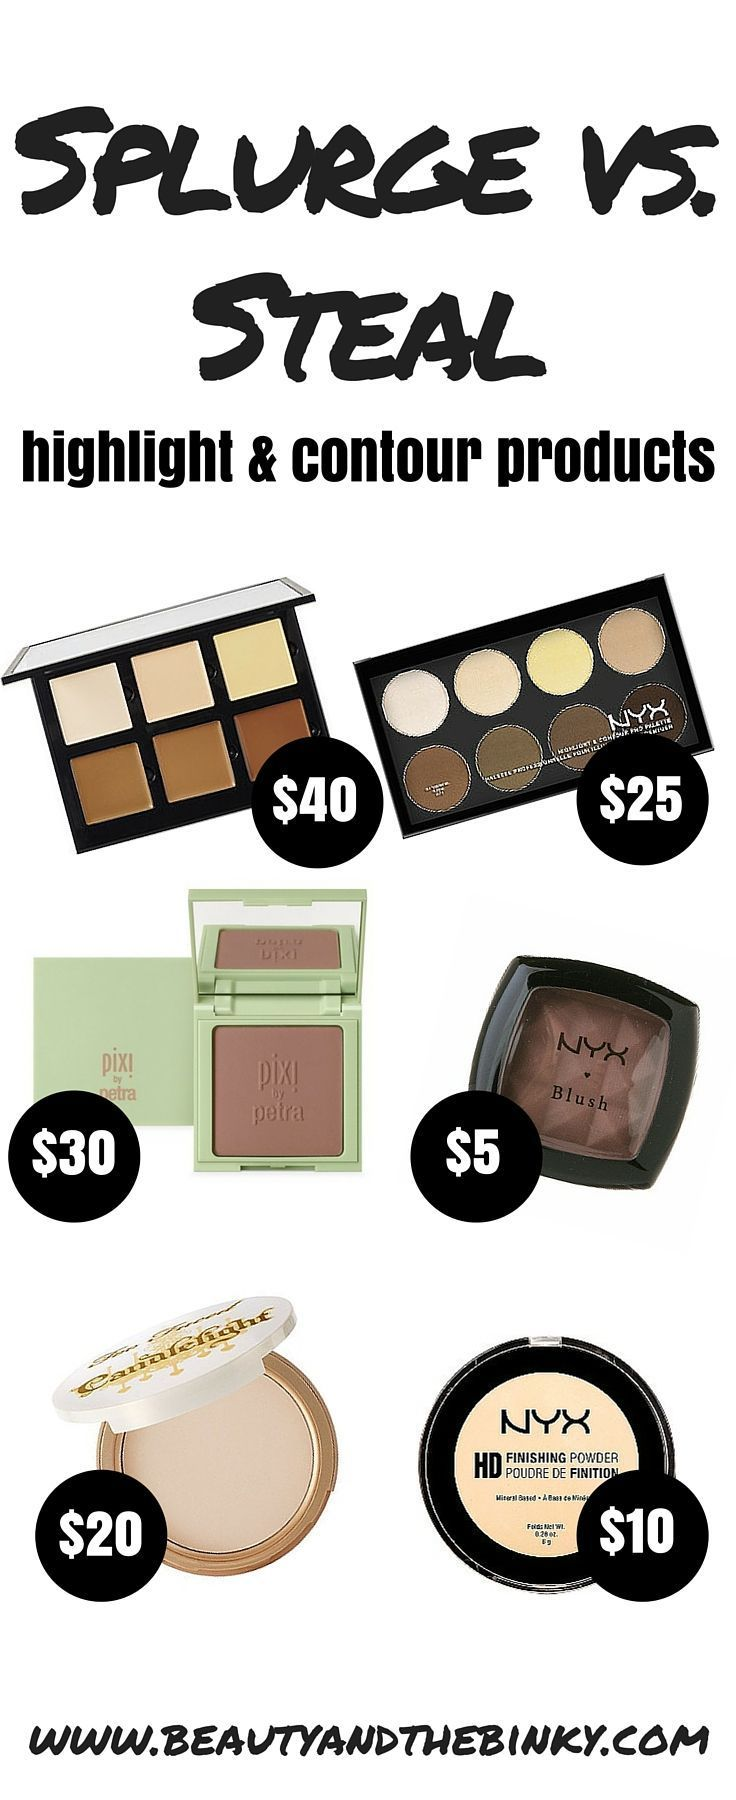 The Best Contouring Makeup for Fair Skin (Splurges & Steals!) - Beauty and the Binky::